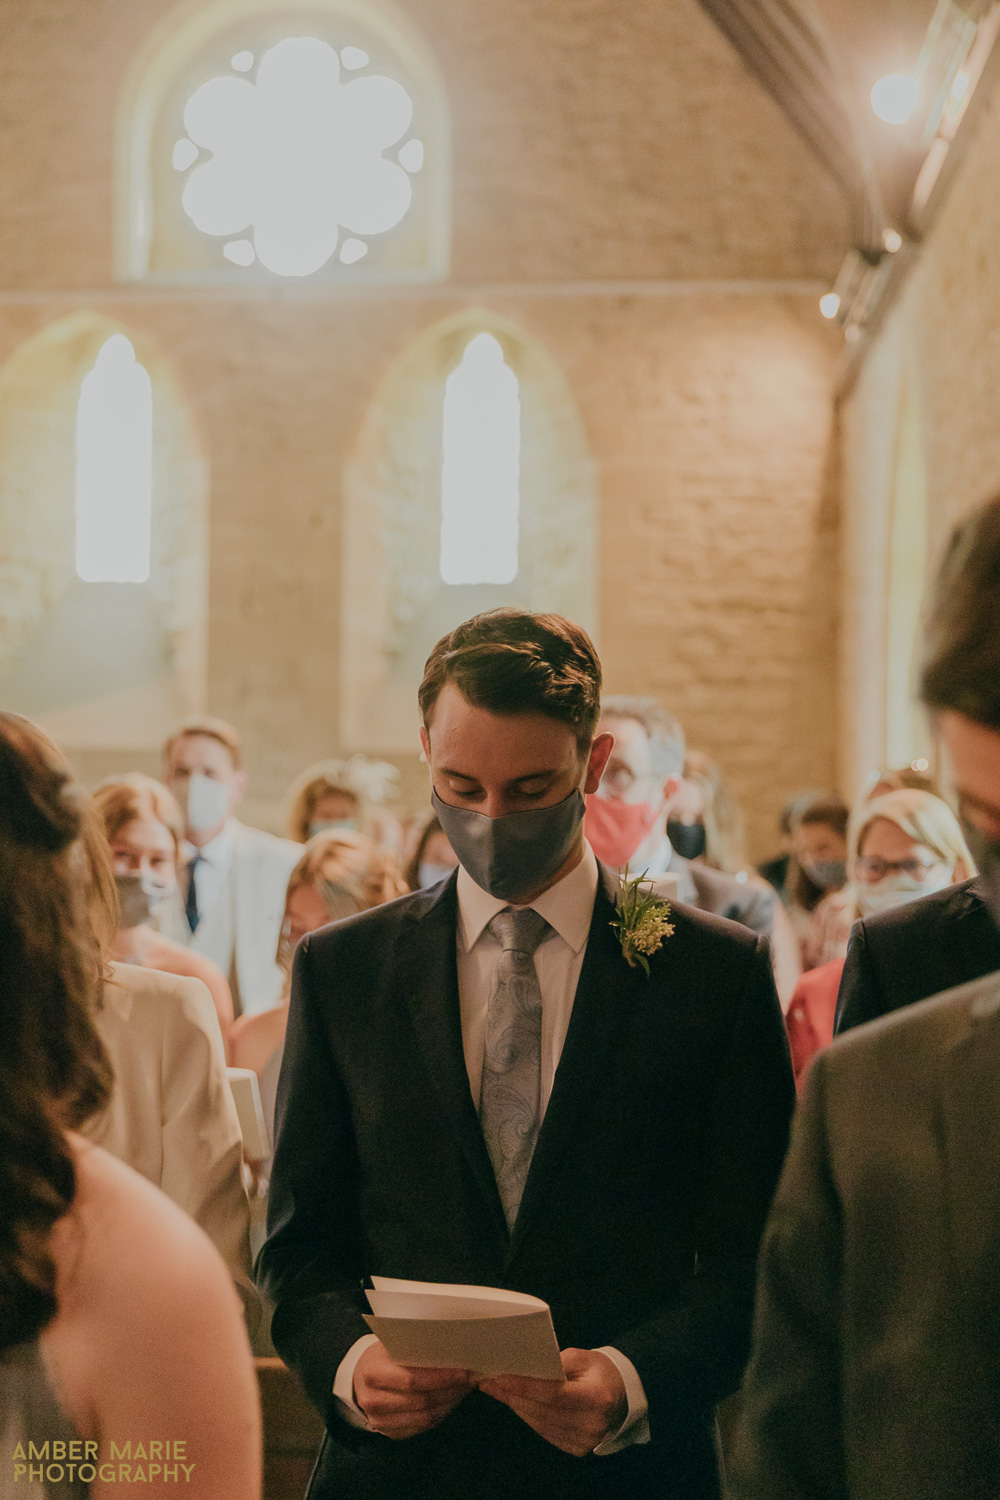 Wedding guest at Whelford Church in Fairford wearing a face mask